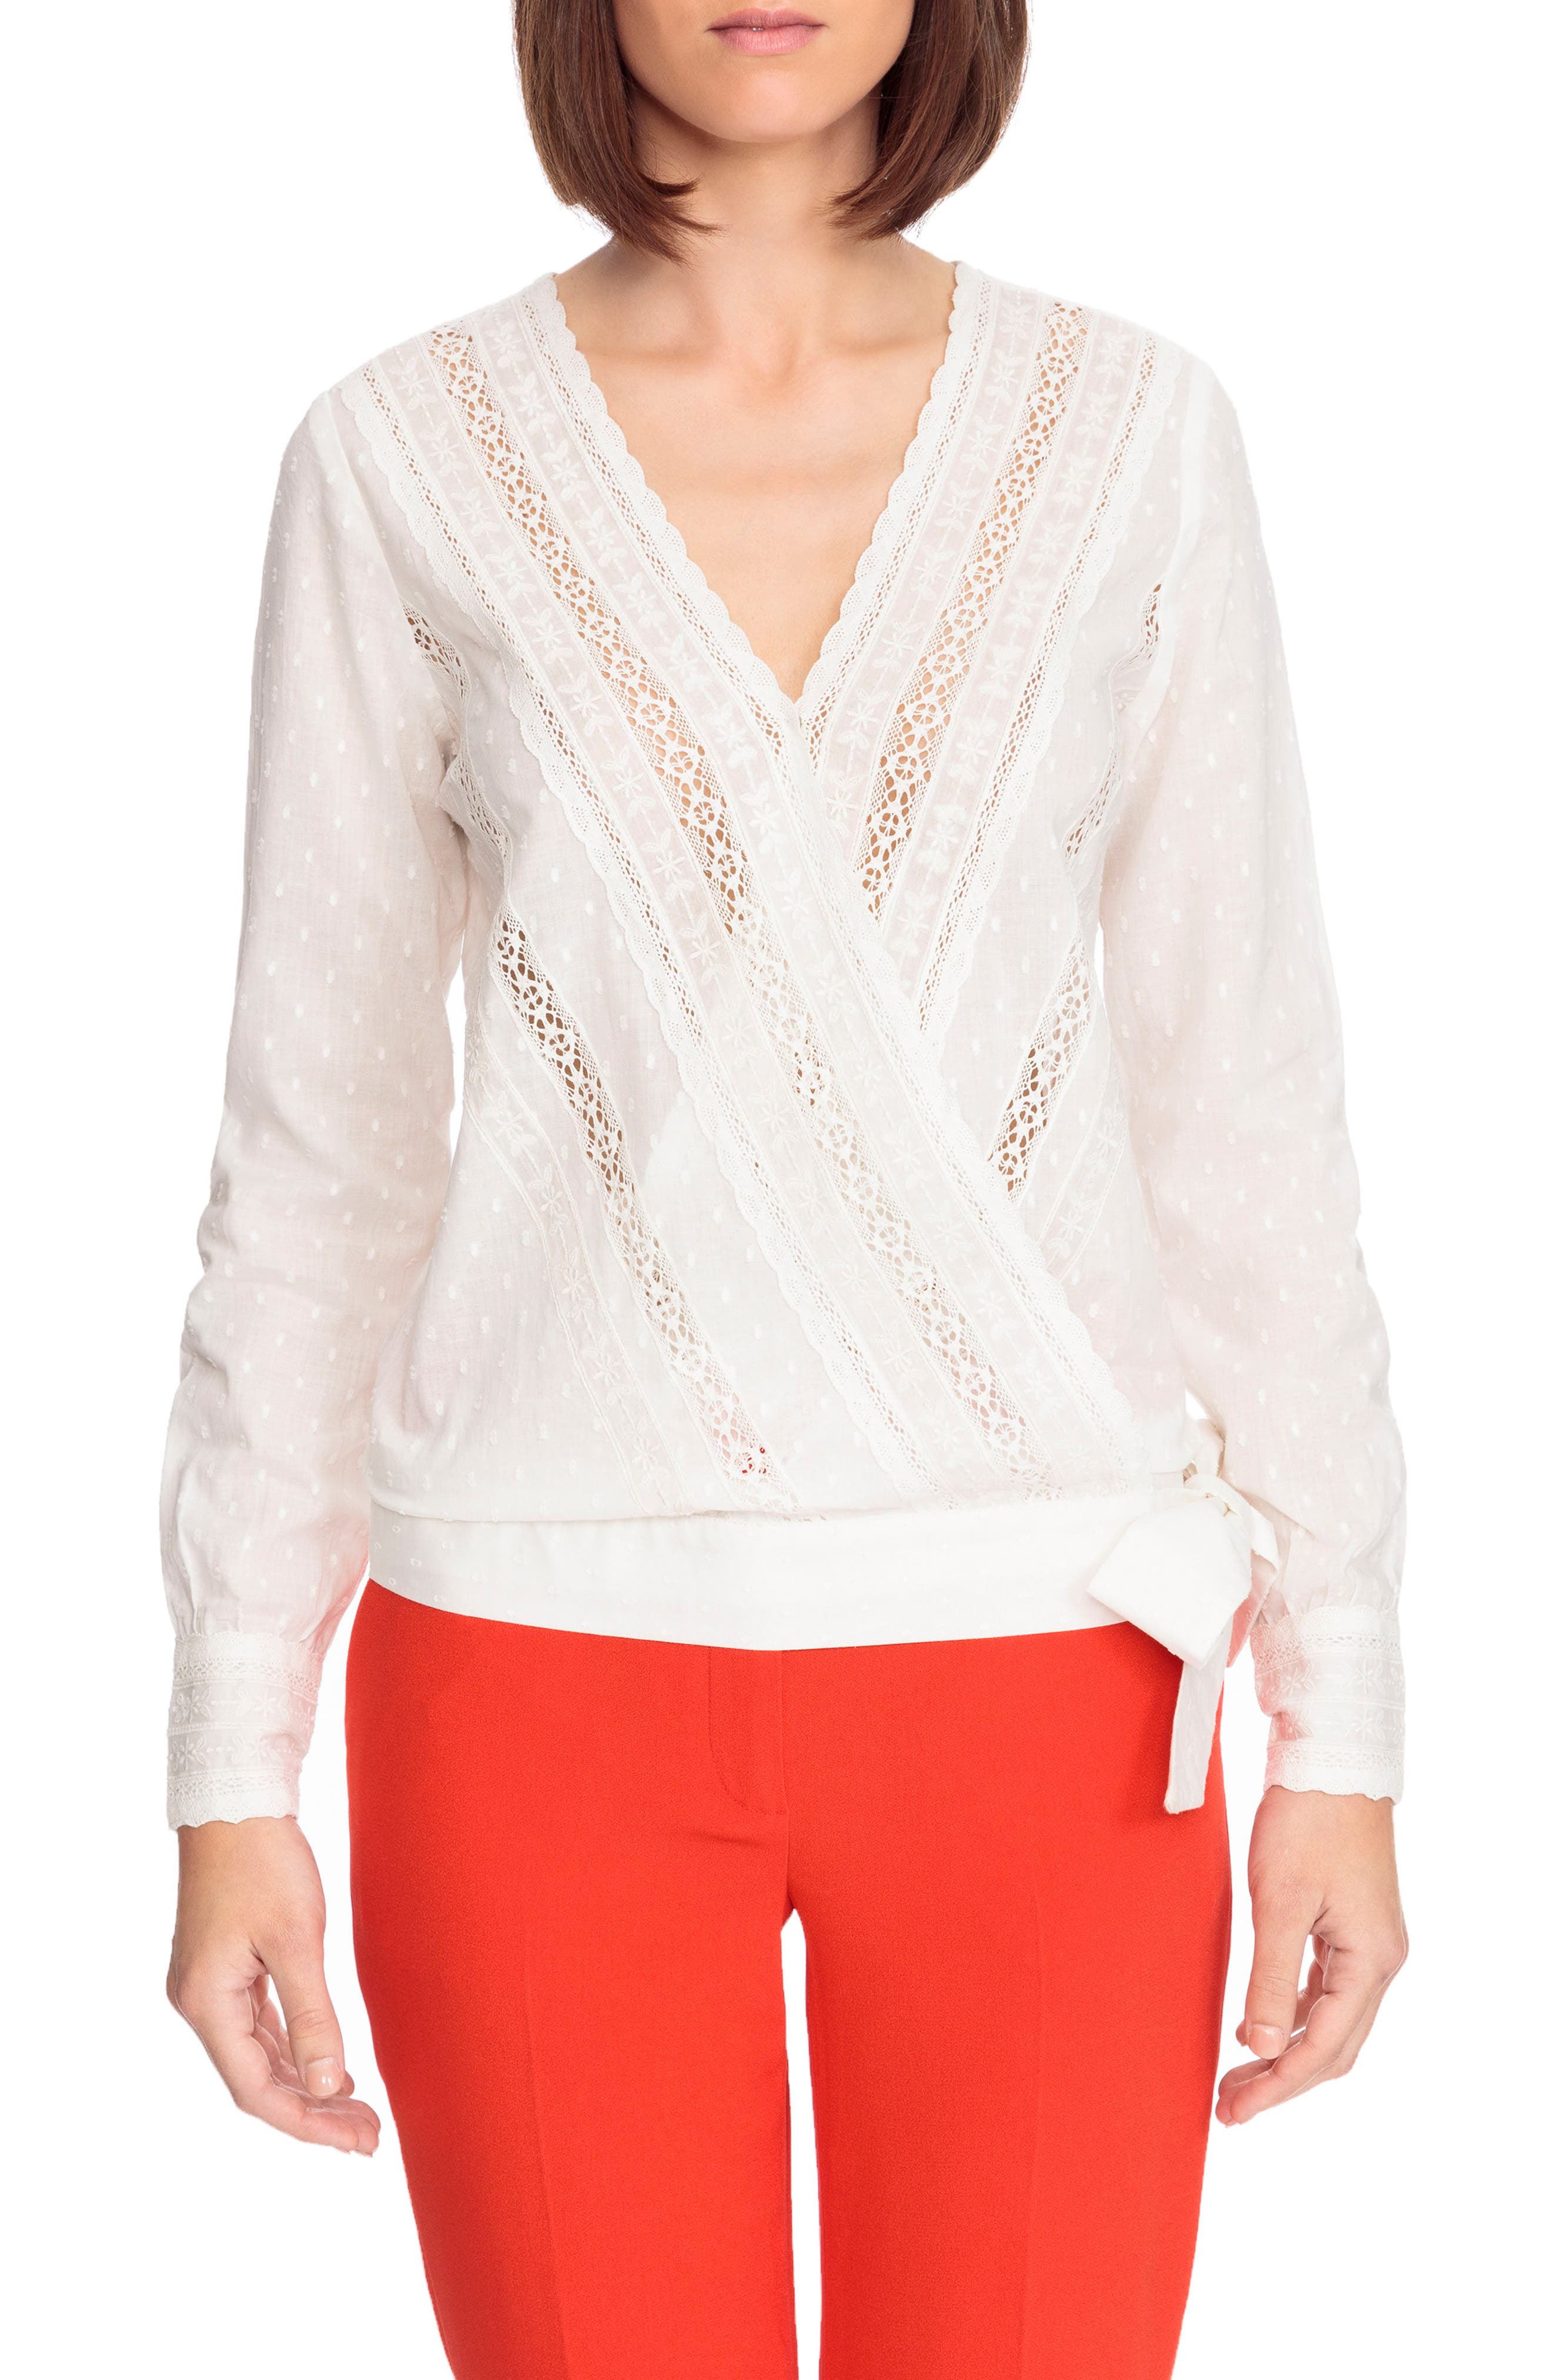 Alessandra Wrap Blouse,                         Main,                         color, Off White